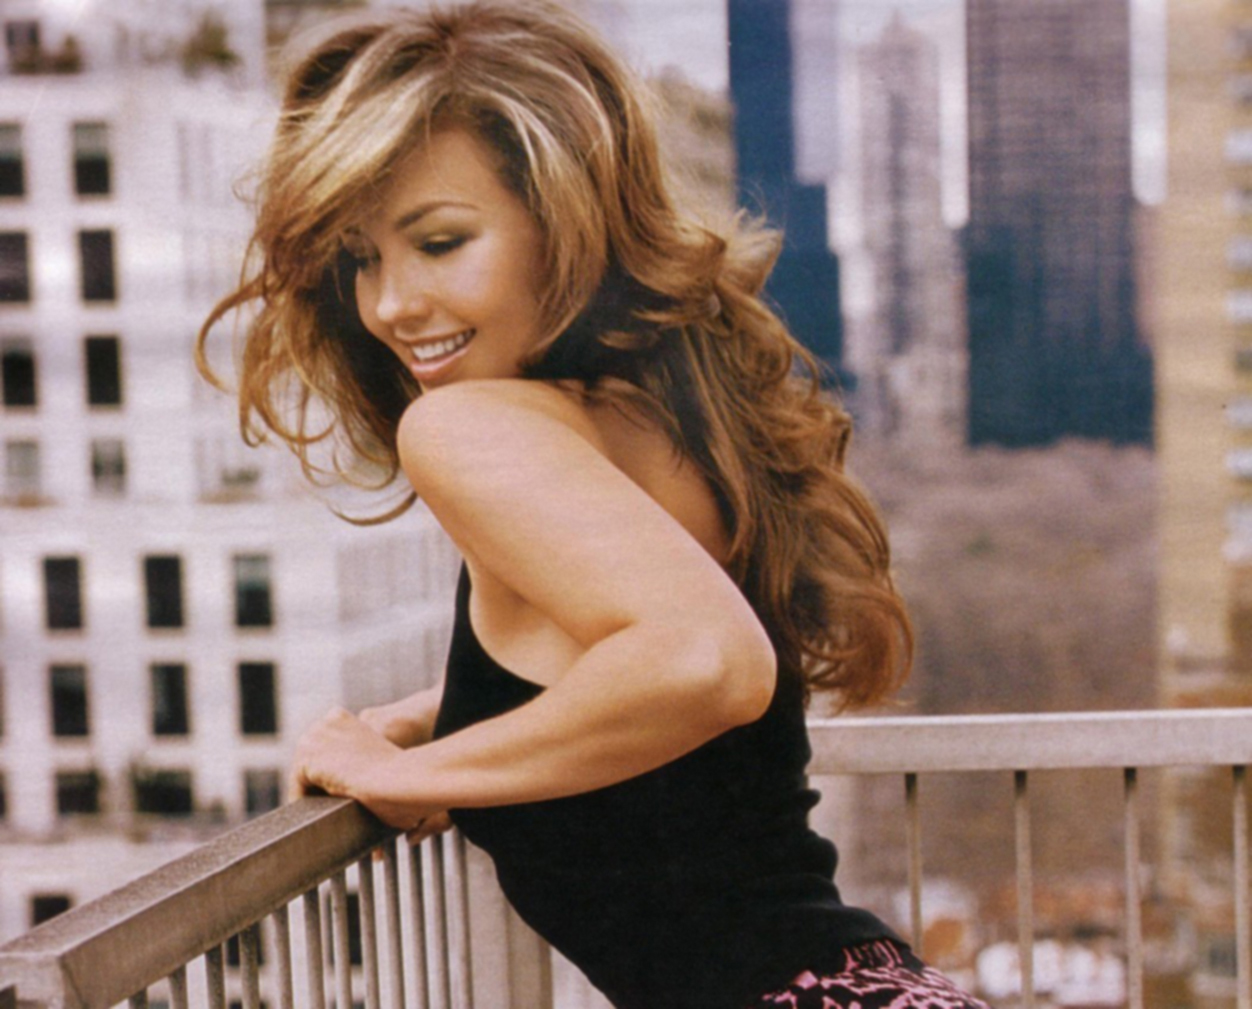 https://i1.wp.com/www.planetthalia.com/InformationInformacion/thalia_nueva_york_ciudad_new_york_city.jpg